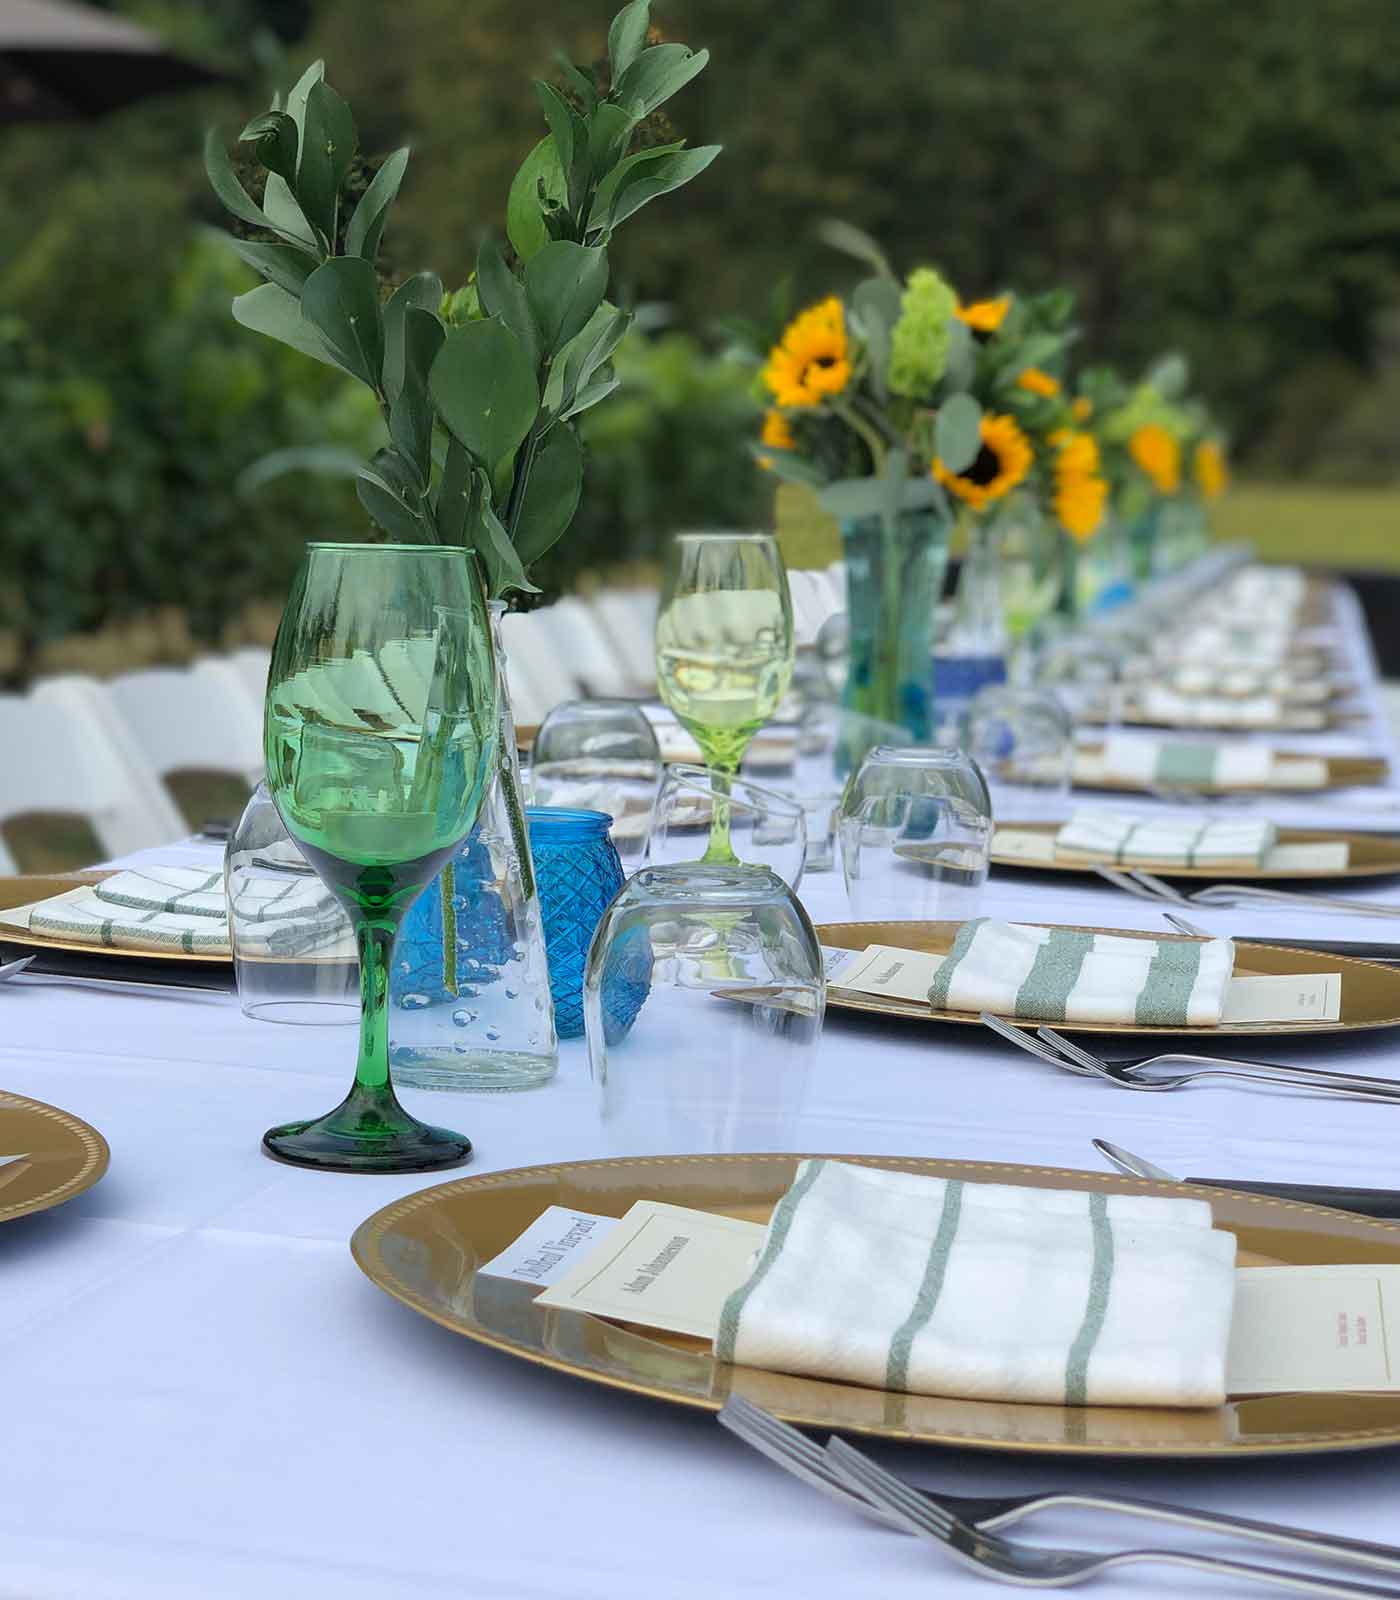 Photo of Dinner Table with a White Table Cloth and all the Cutleries Neatly Arranged to host an Event at Pomeroy Cellars